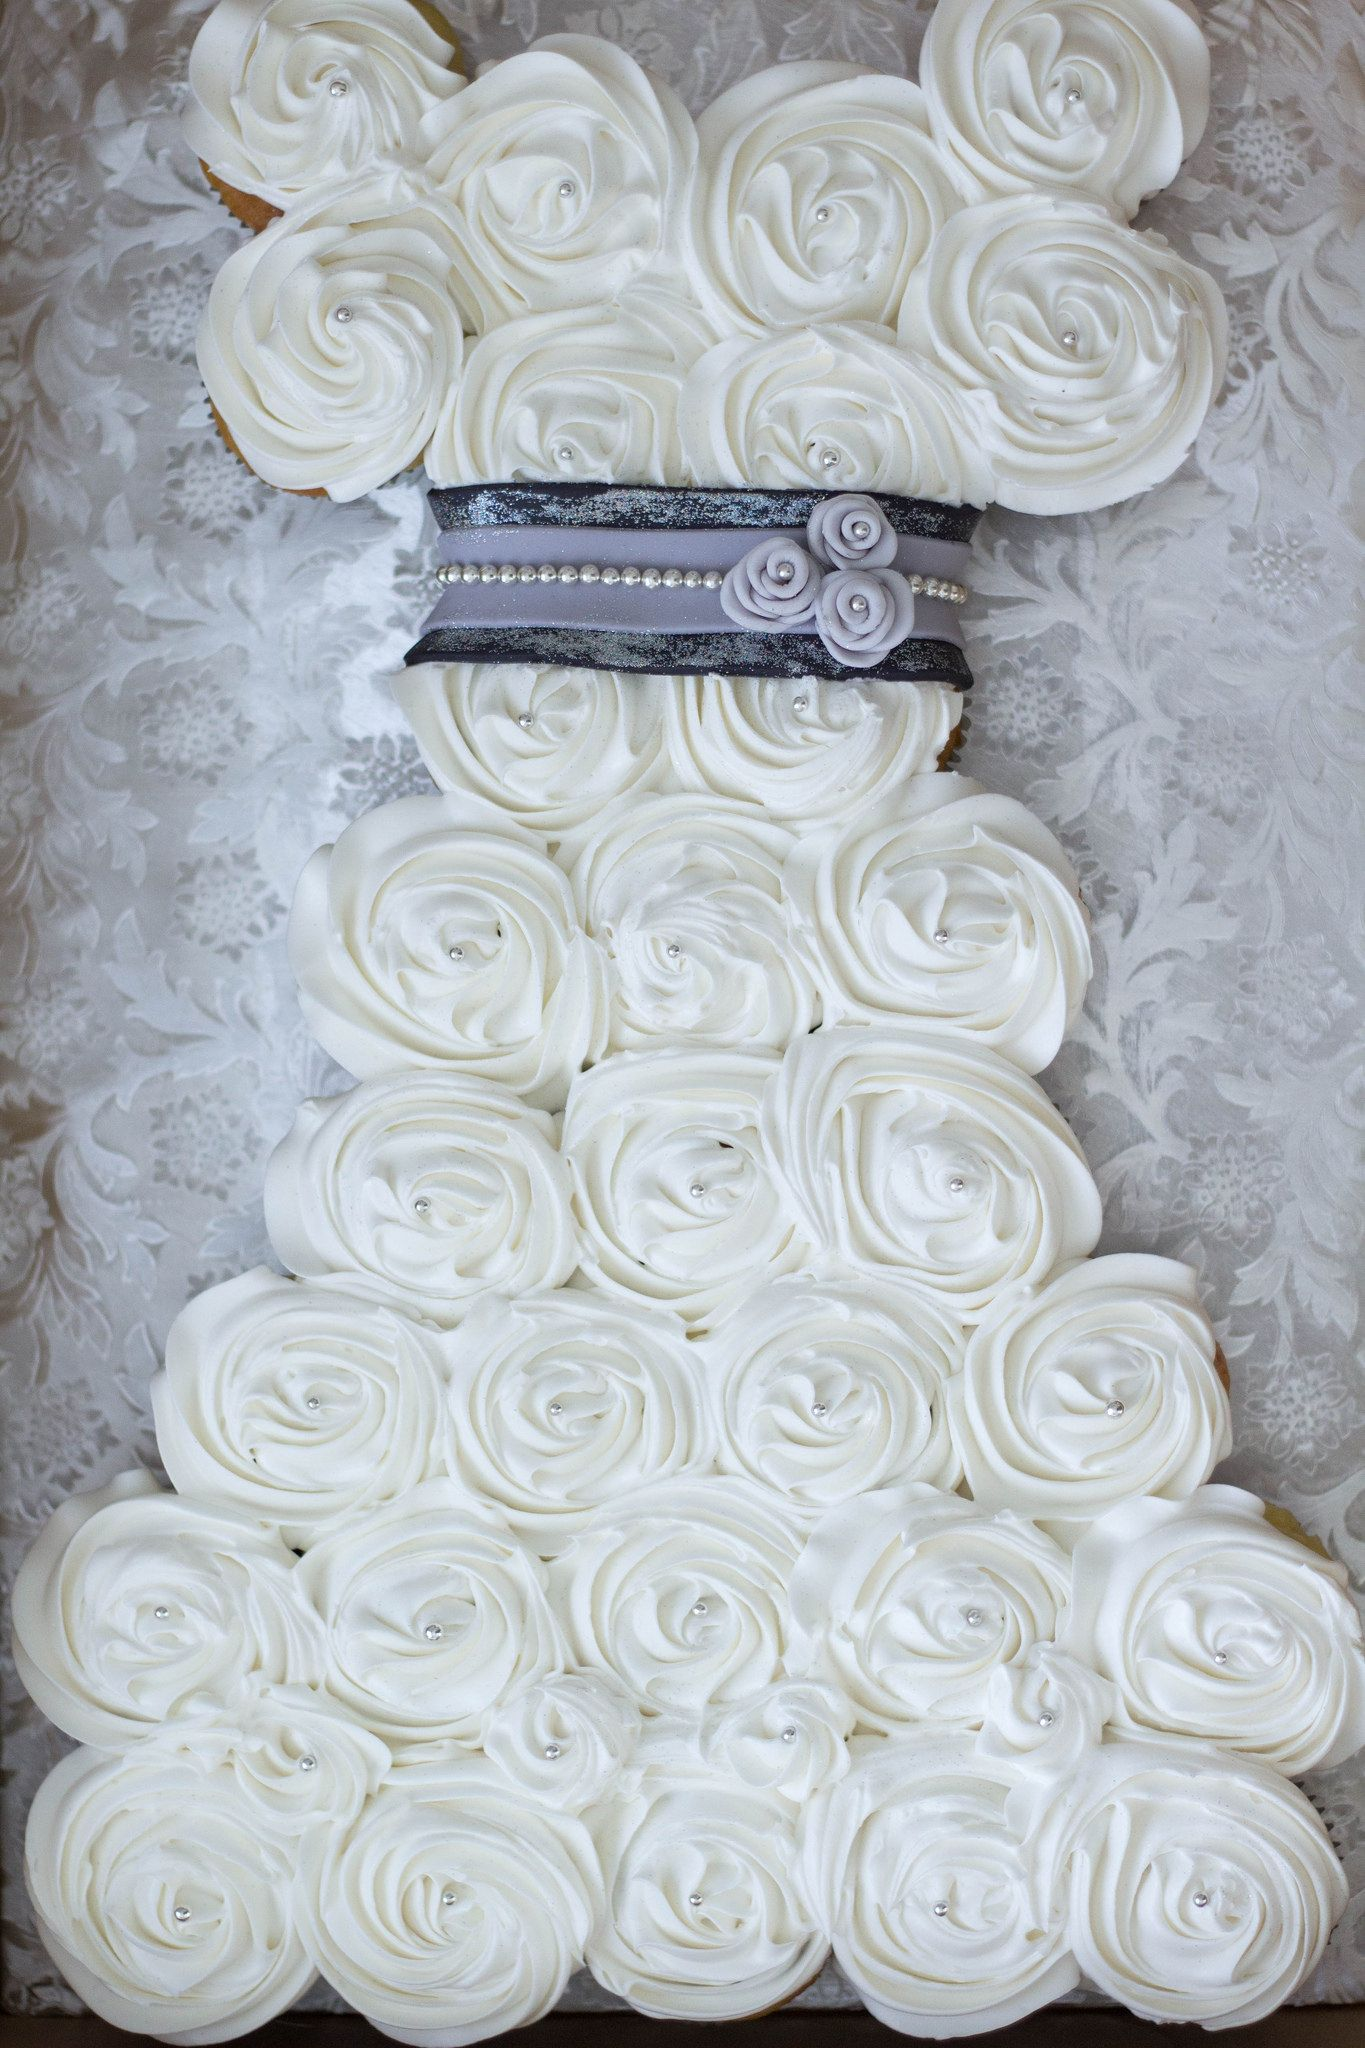 black + silver wedding dress cupcake cake | wedding dress cupcakes